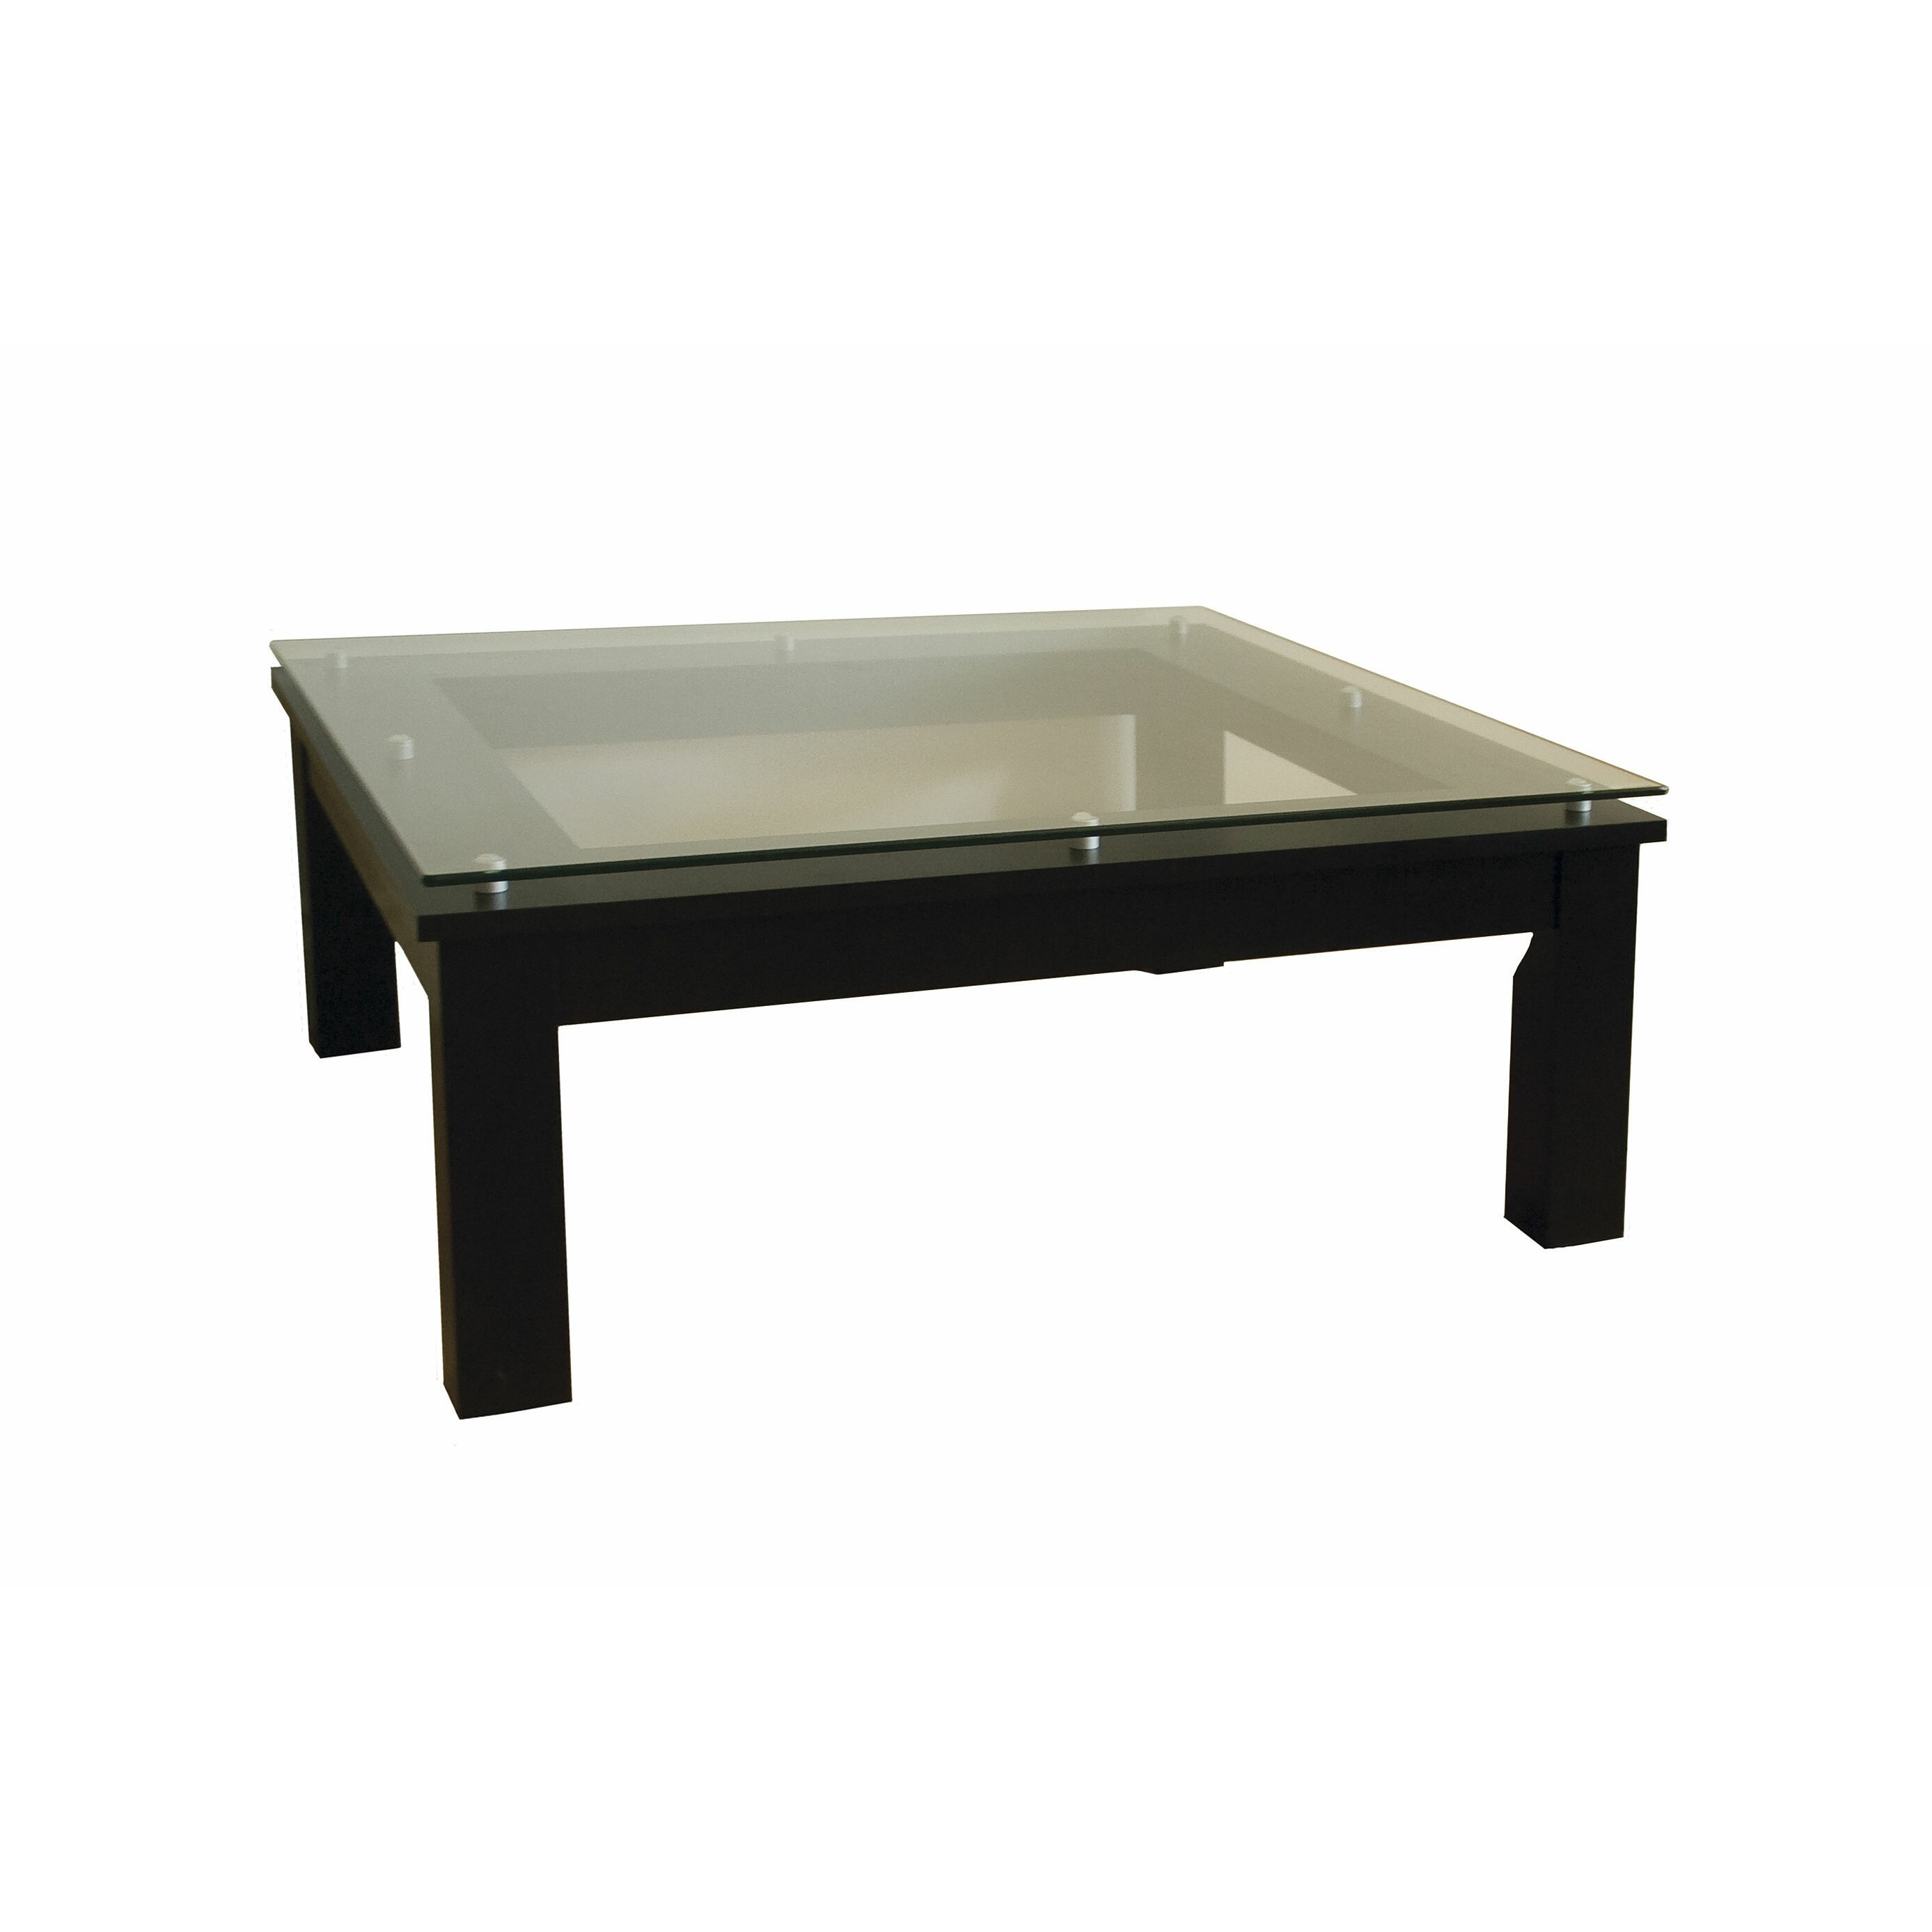 Plateau sl series coffee table reviews wayfair for Wayfair glass top coffee table